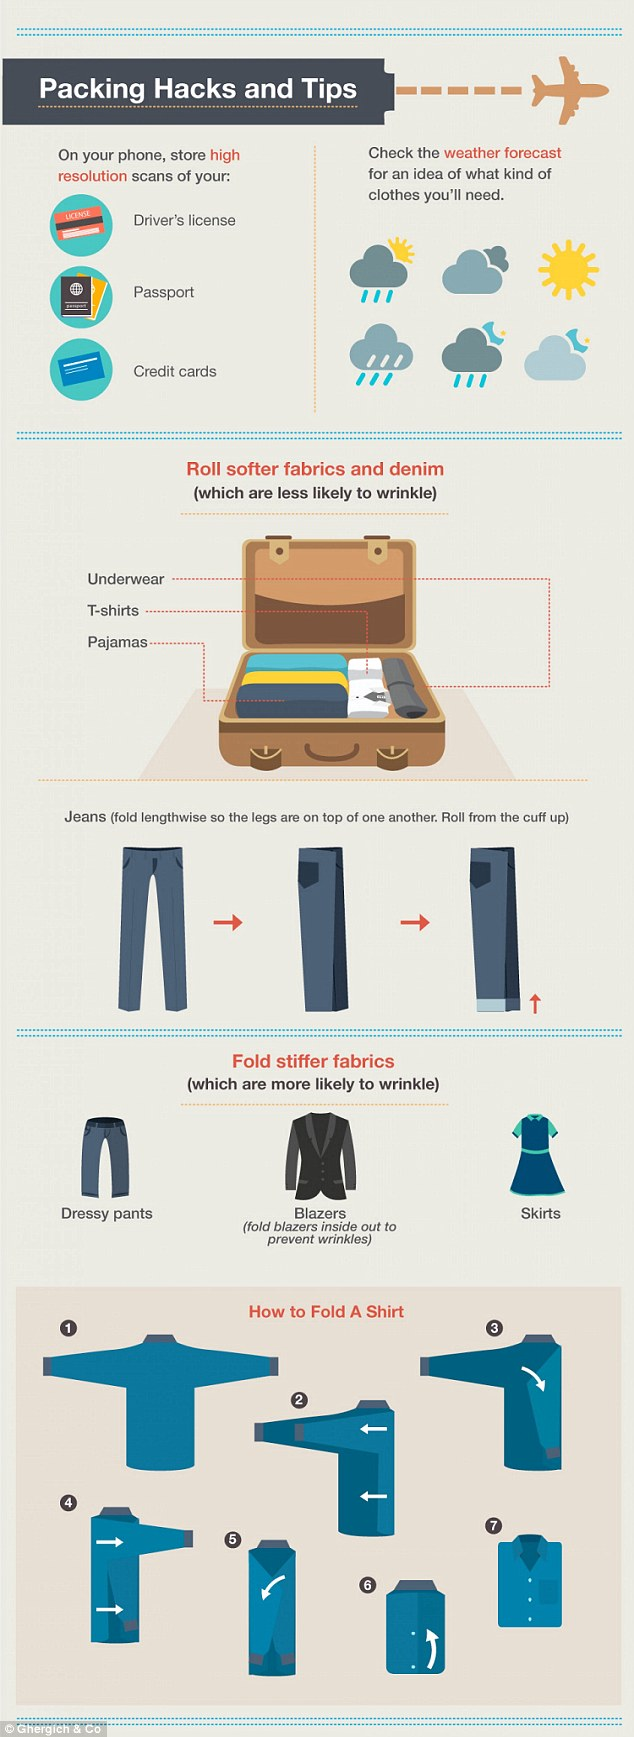 fold your clothes following these tips to save space